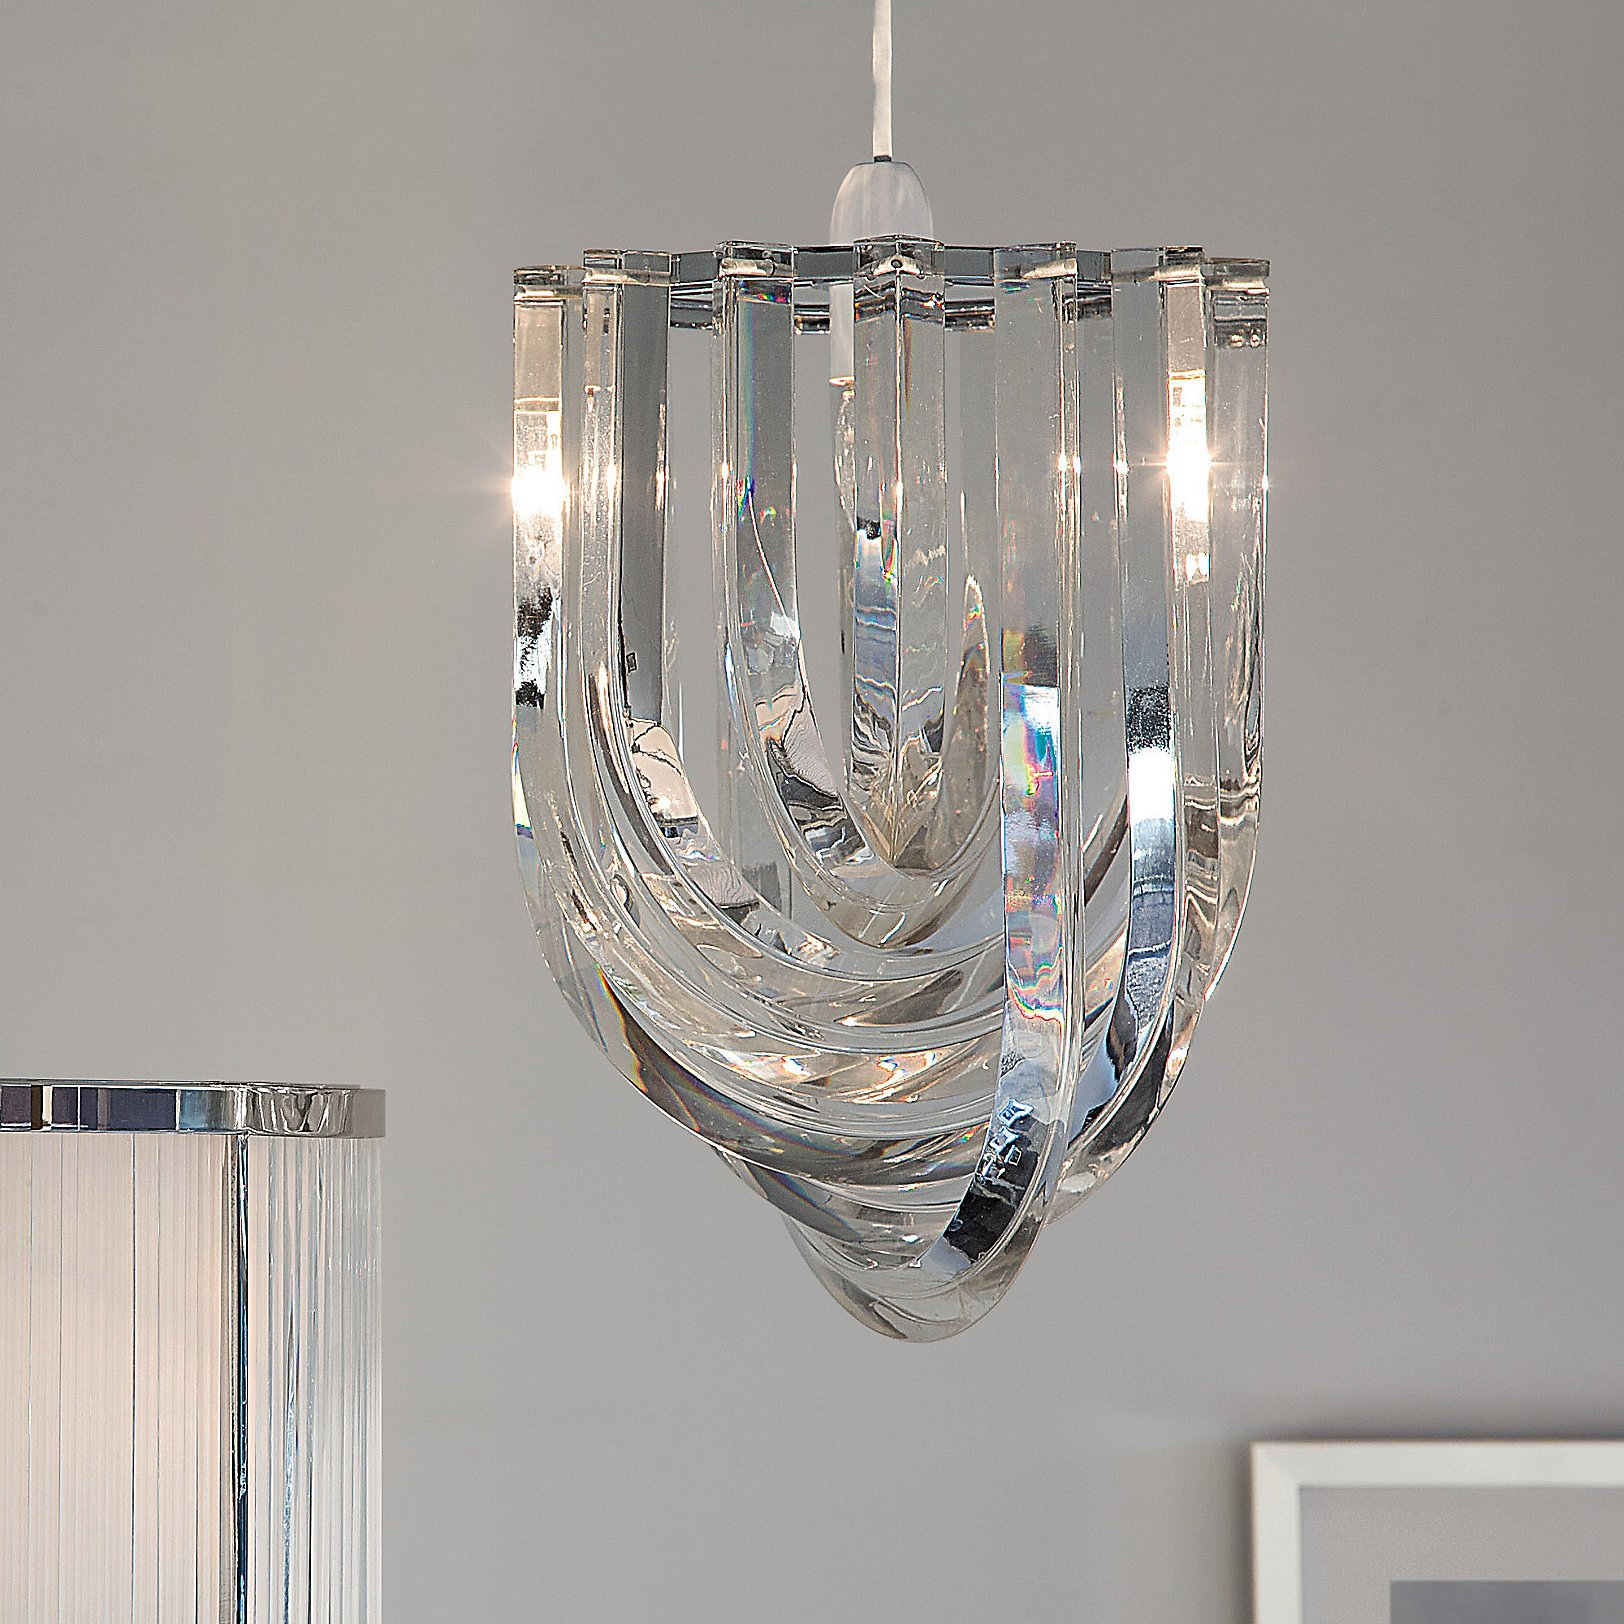 Luxury Interior Lighting Design with Glass Chandelier Shades: Glass Chandelier Shades | Glass Chandelier Shades | Replacement Globes For Ceiling Lights